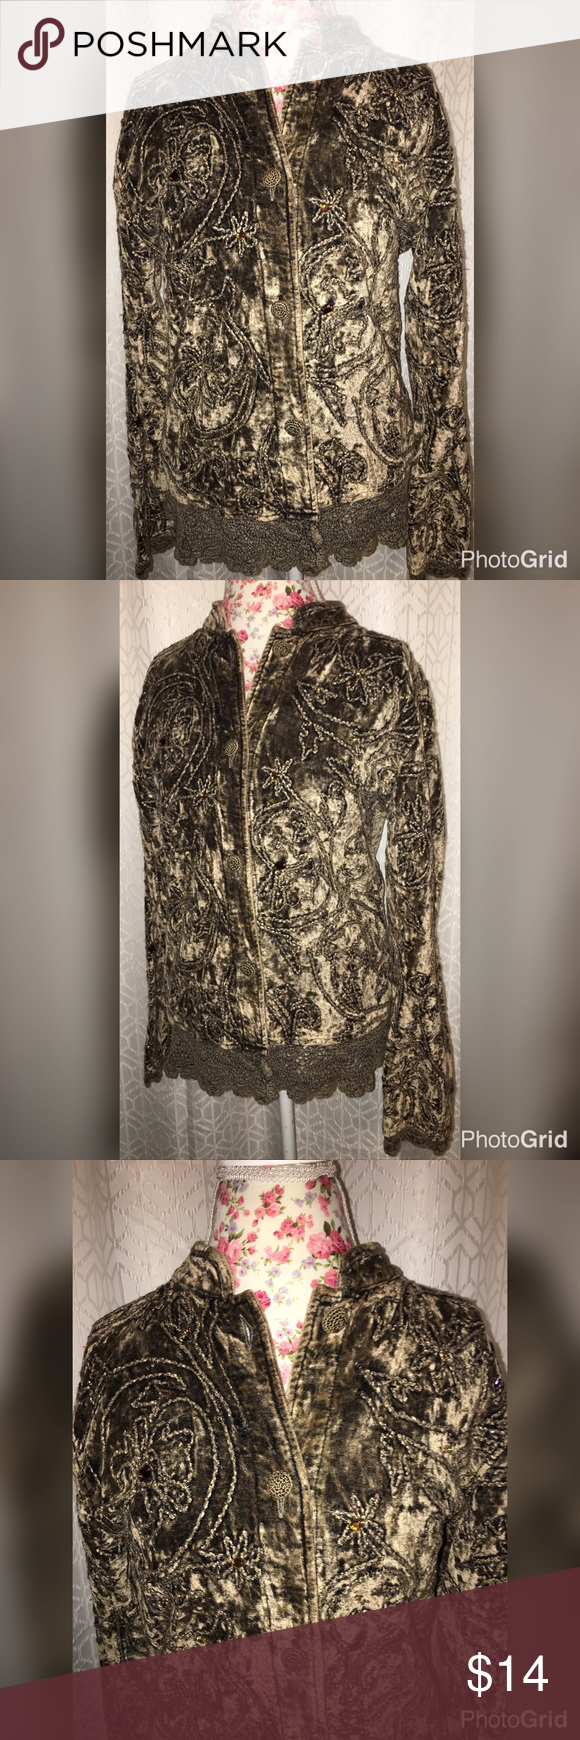 NWOT FLASHBACK VINTAGE BROWN INTRICATE JACKET LG This jacket is made by flashback and it really does bring you back to the age of beauty and detail it is a brown sweater with intricate details all throughout it 21 inches across the chest and it is a button up sweater and it has beautiful crochet along the bottom and the sleeves it's a size large and is 27 inches from the shoulders and in excellent condition! Flashback Jackets & Coats Blazers